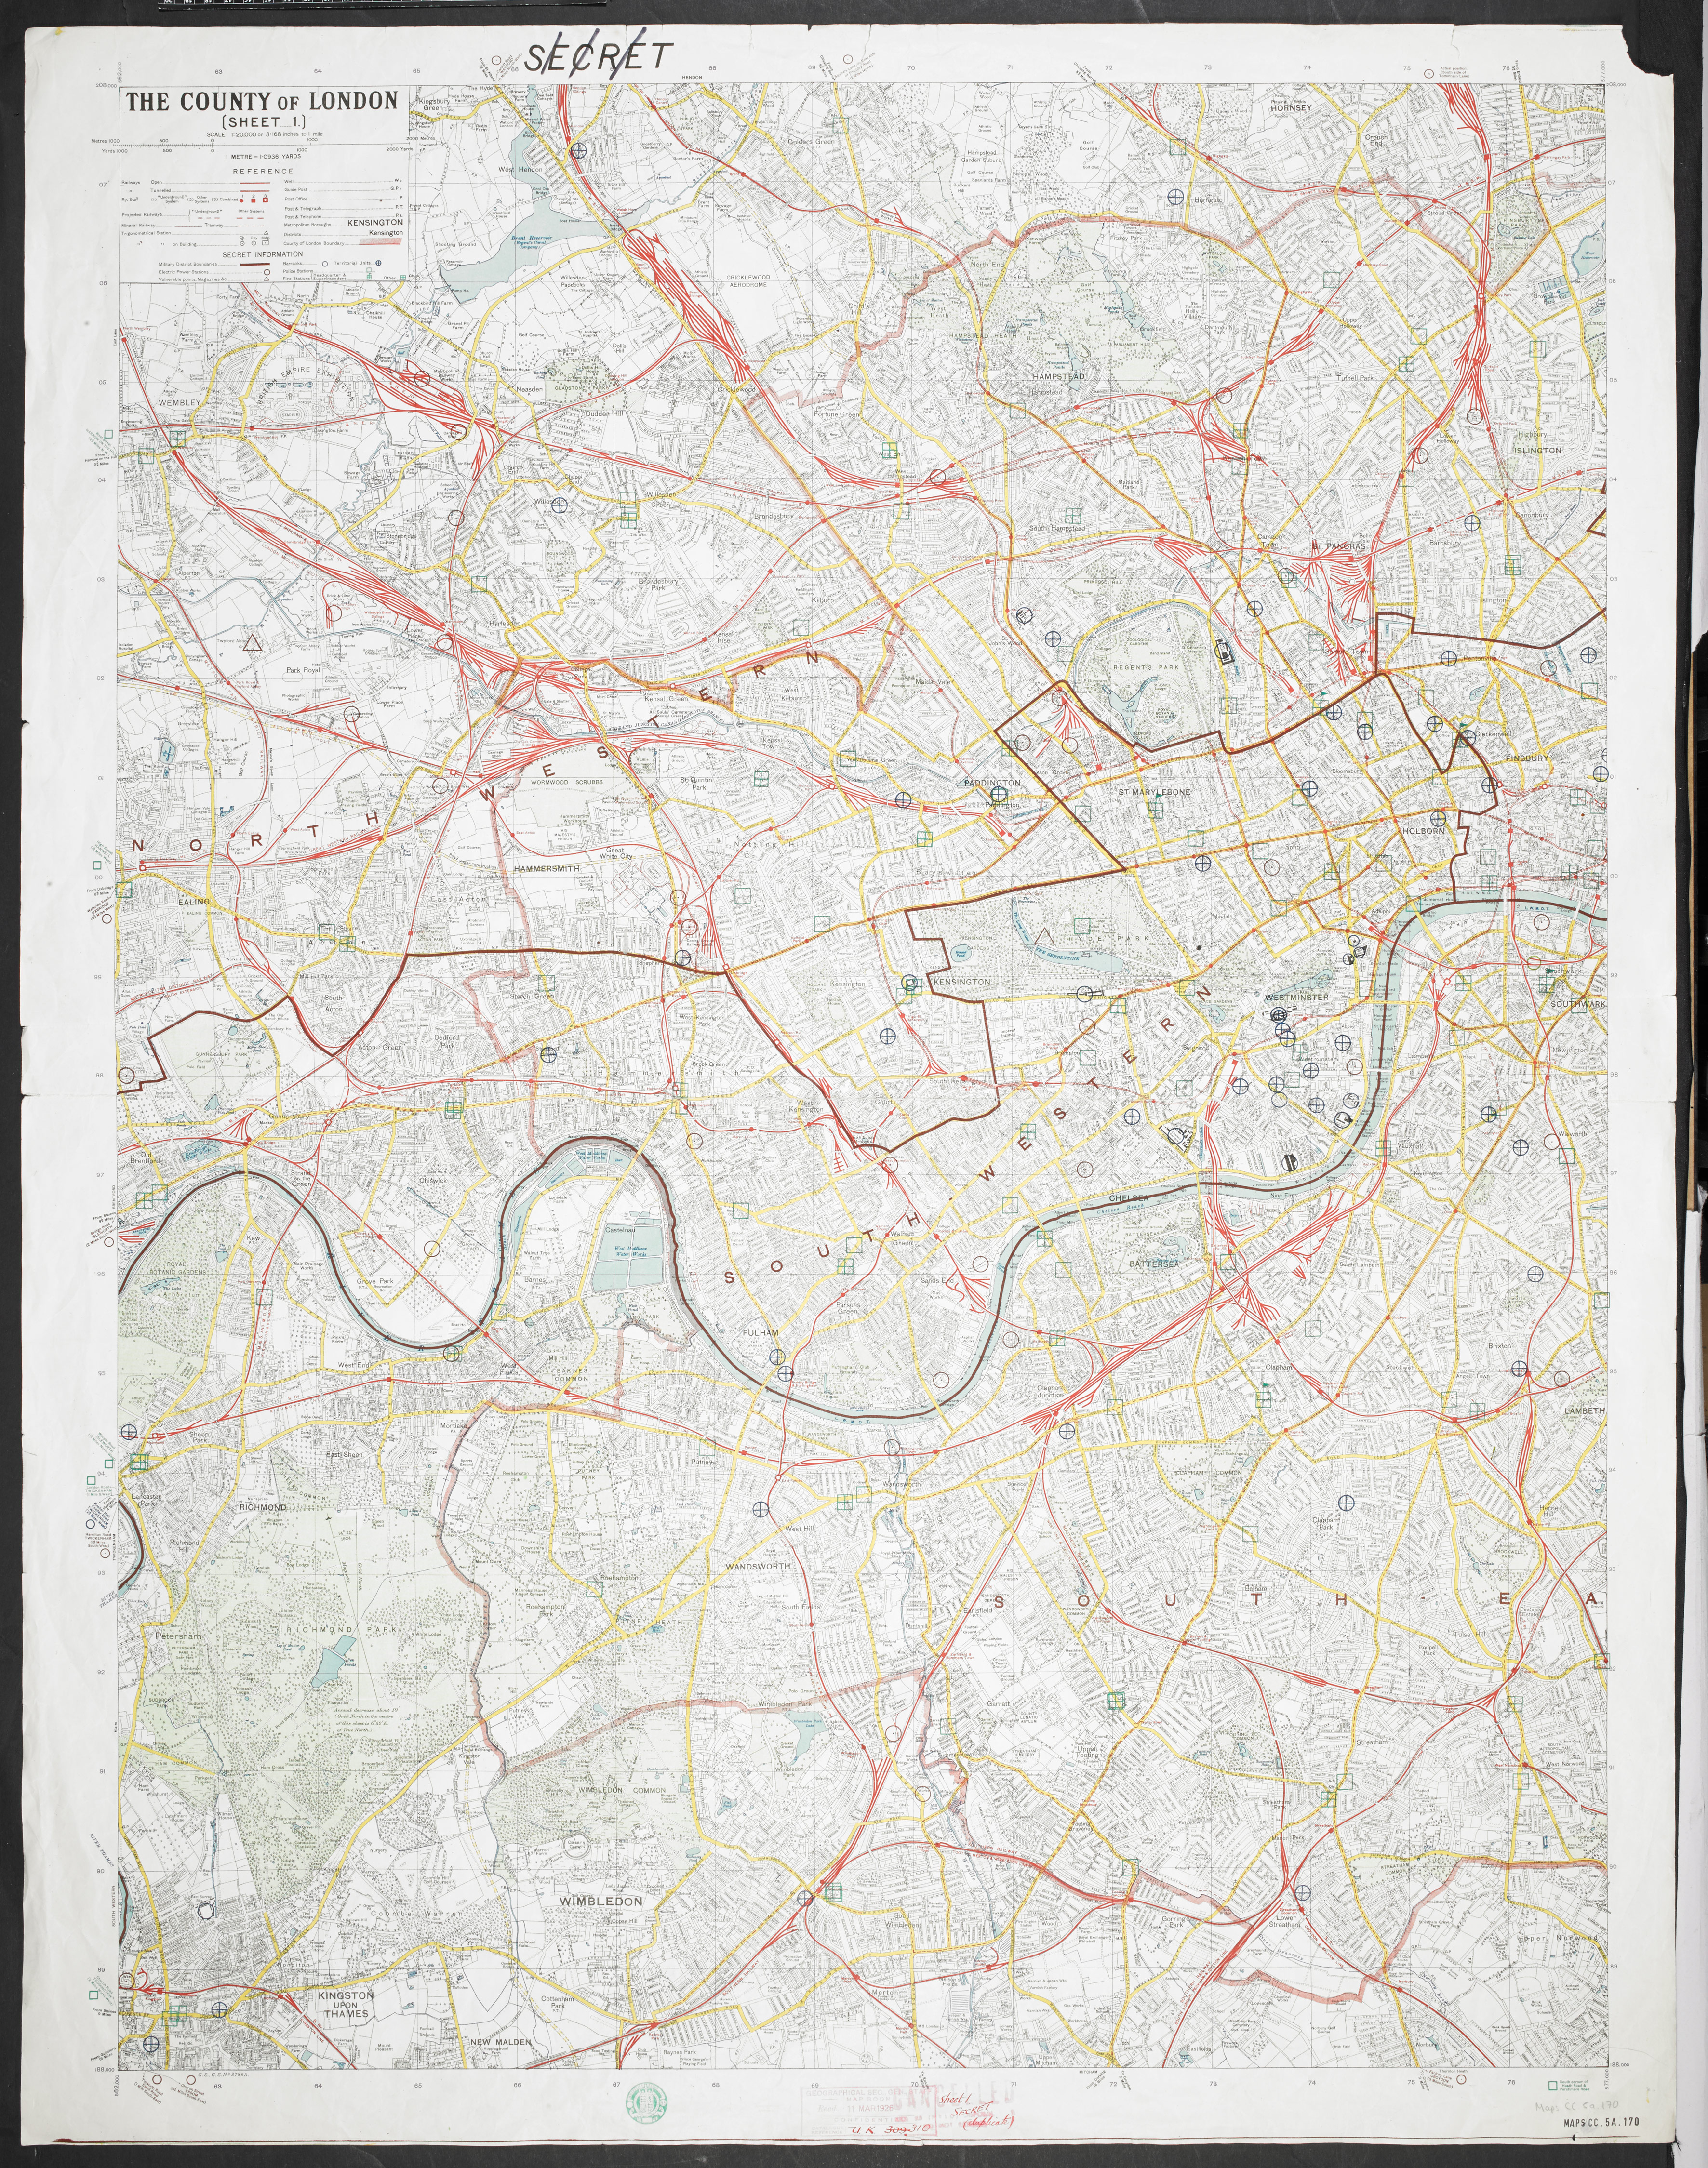 The county of London, GSGS. no. 3786A (Maps CC.5.a.170.)